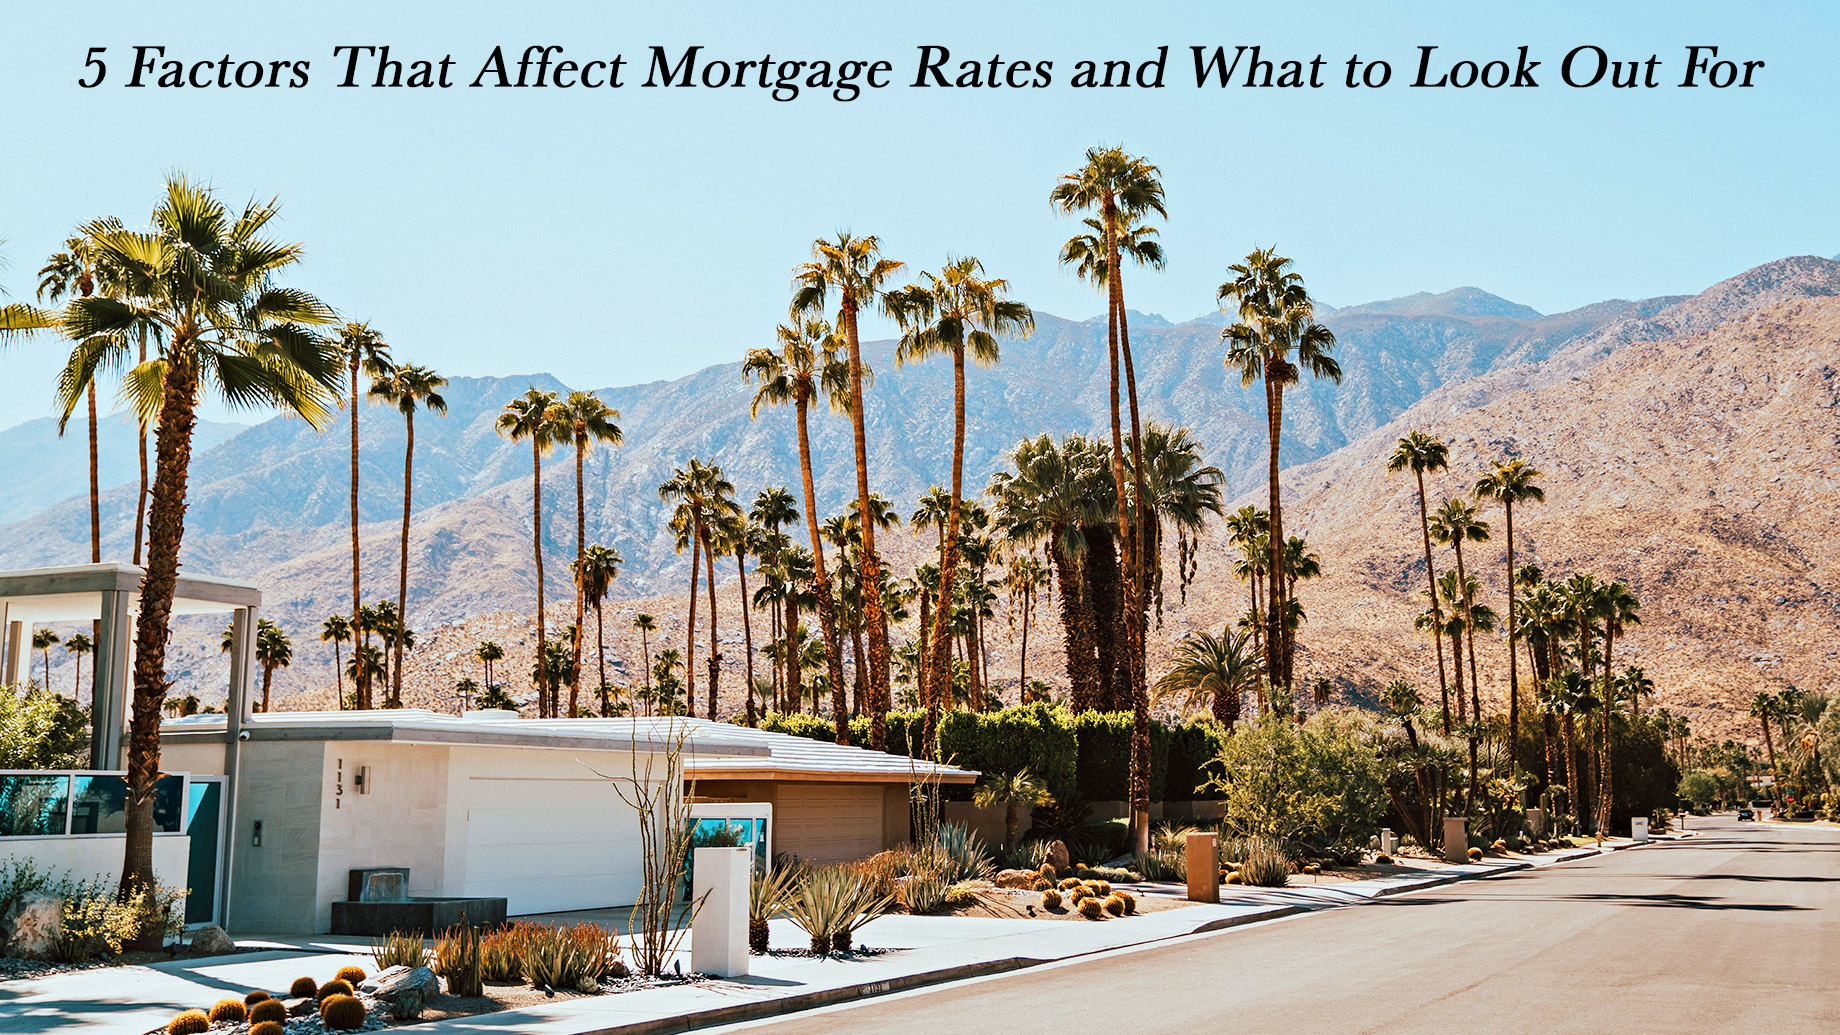 5 Factors That Affect Mortgage Rates and What to Look Out For